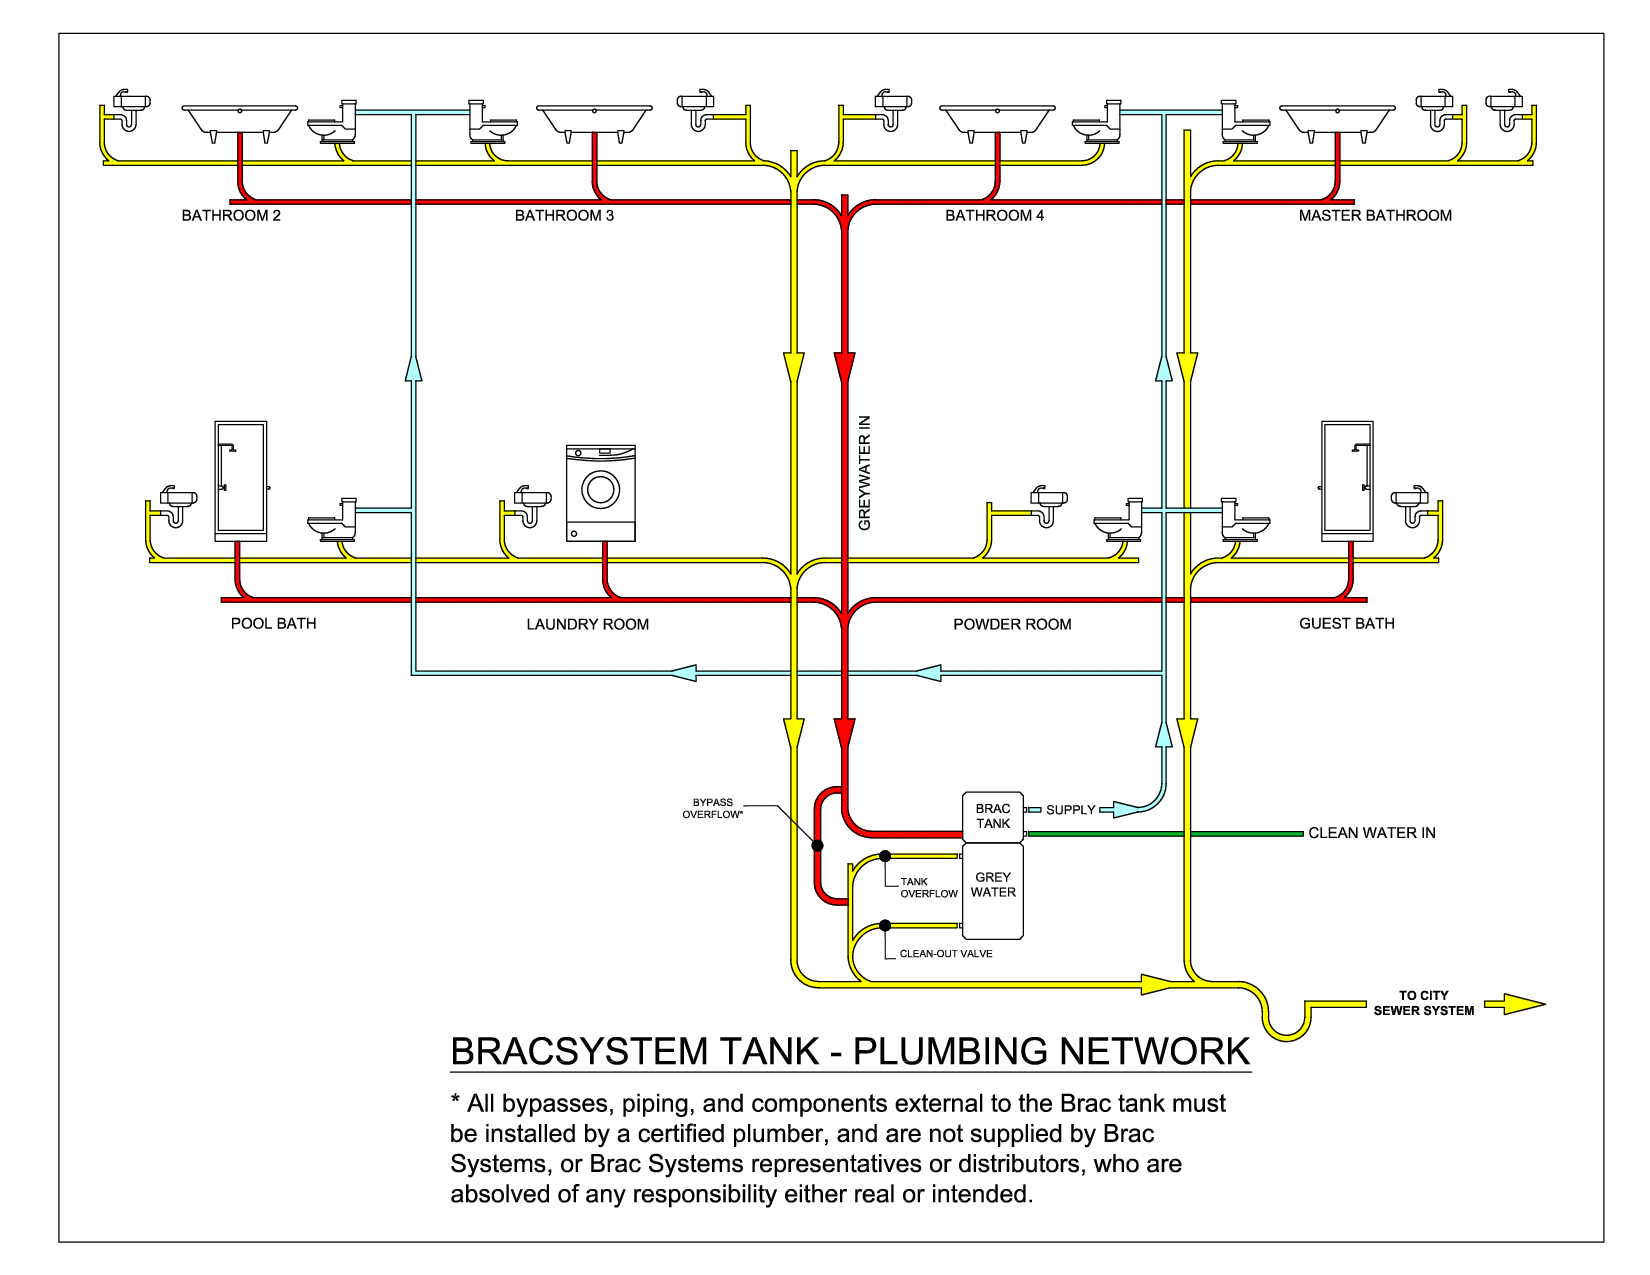 Wiring Schematic 1994 Champion Single Wide Mobile Home 54 1976 Jeep 6a10db7de24186000f000aa7eded67b2 Plumbing Systems Network Diagram Pdf At